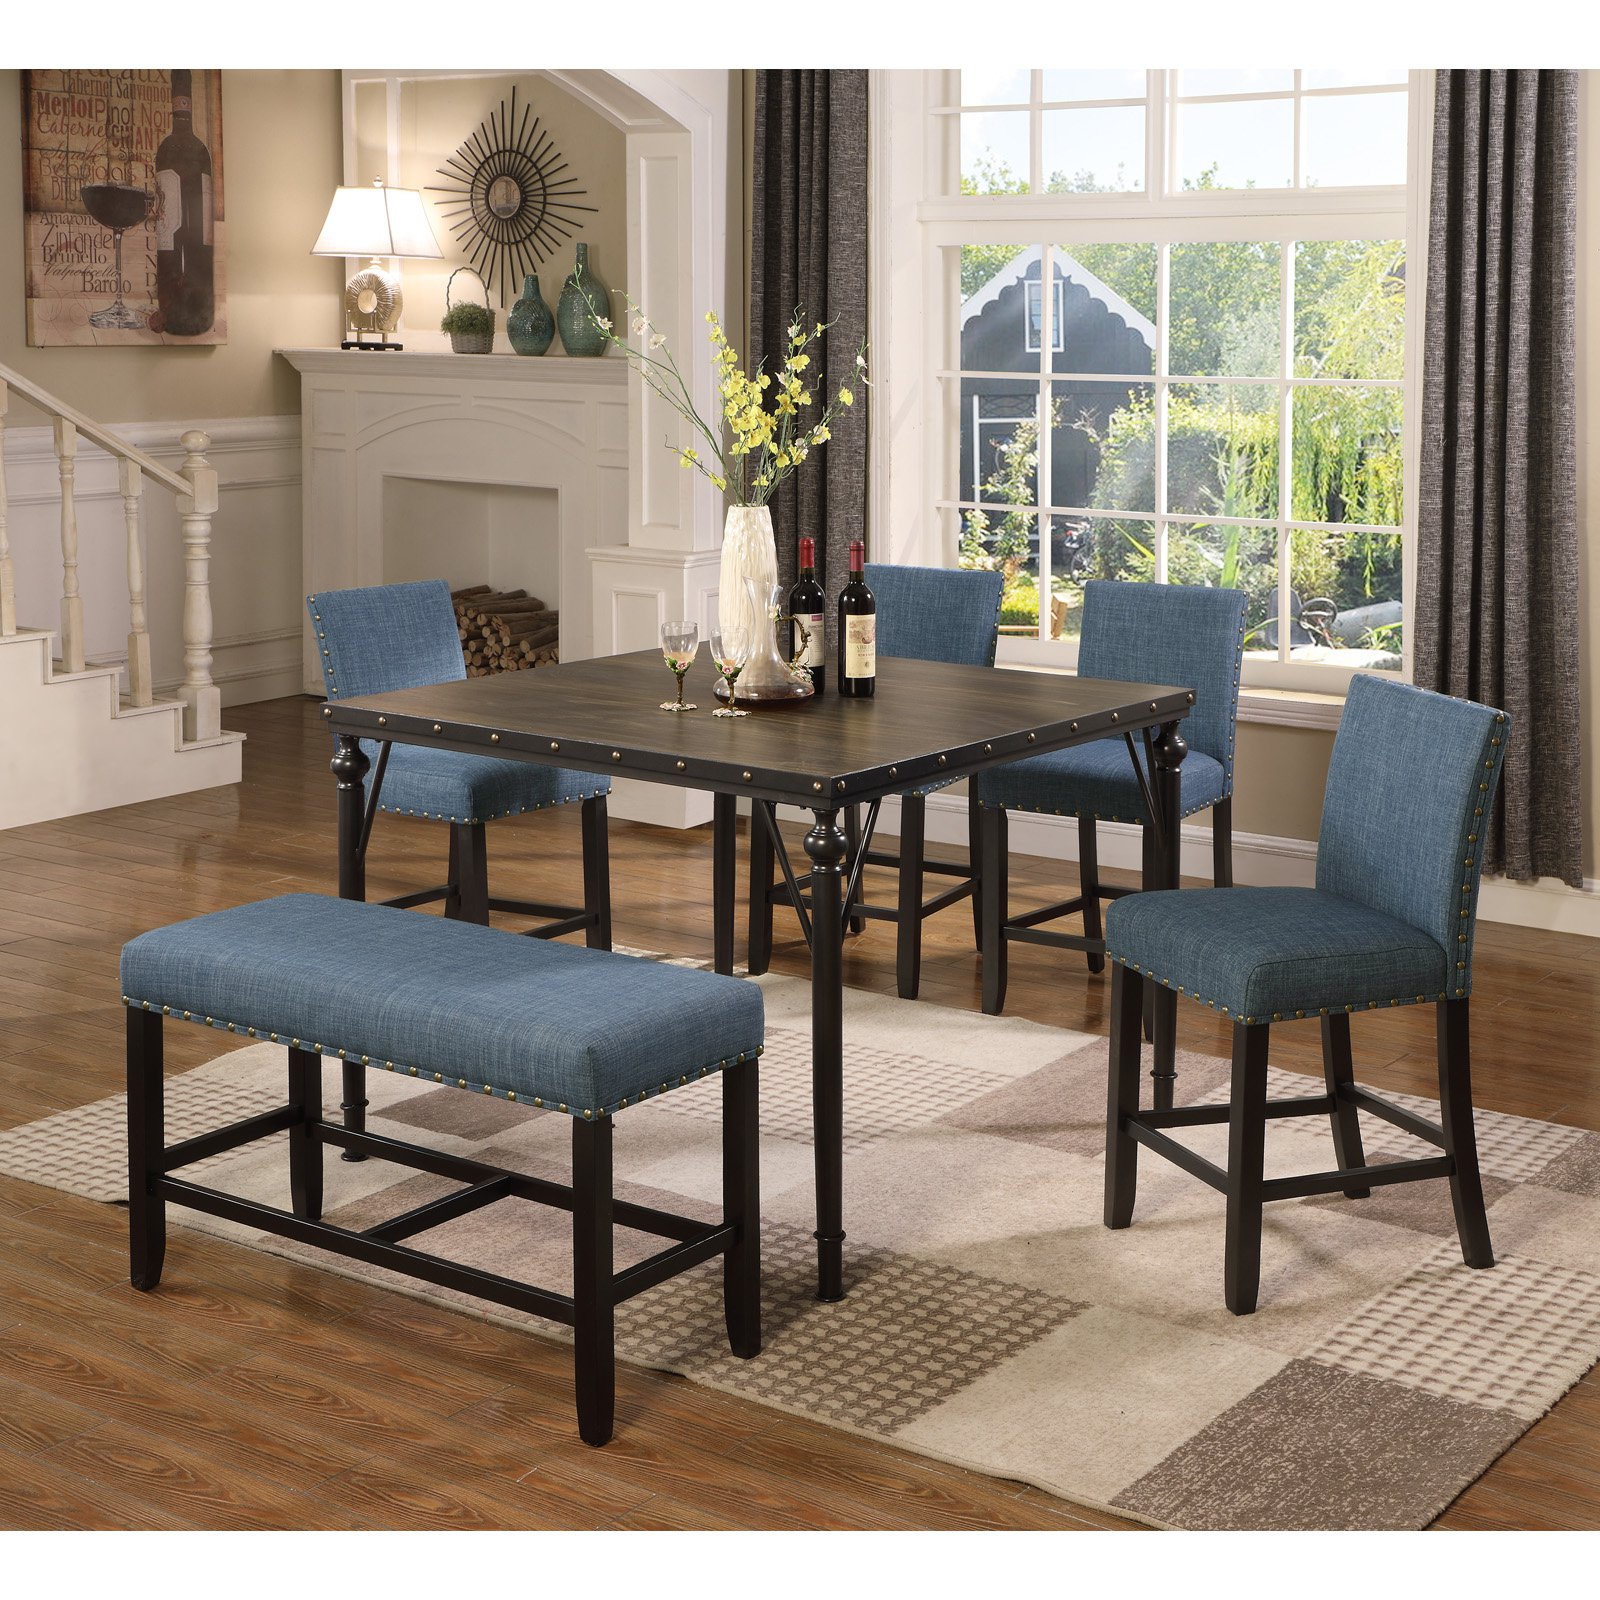 Roundhill Furniture Biony 6 Piece Square Counter Height In Best And Newest Benchwright Bar Height Dining Tables (View 9 of 25)